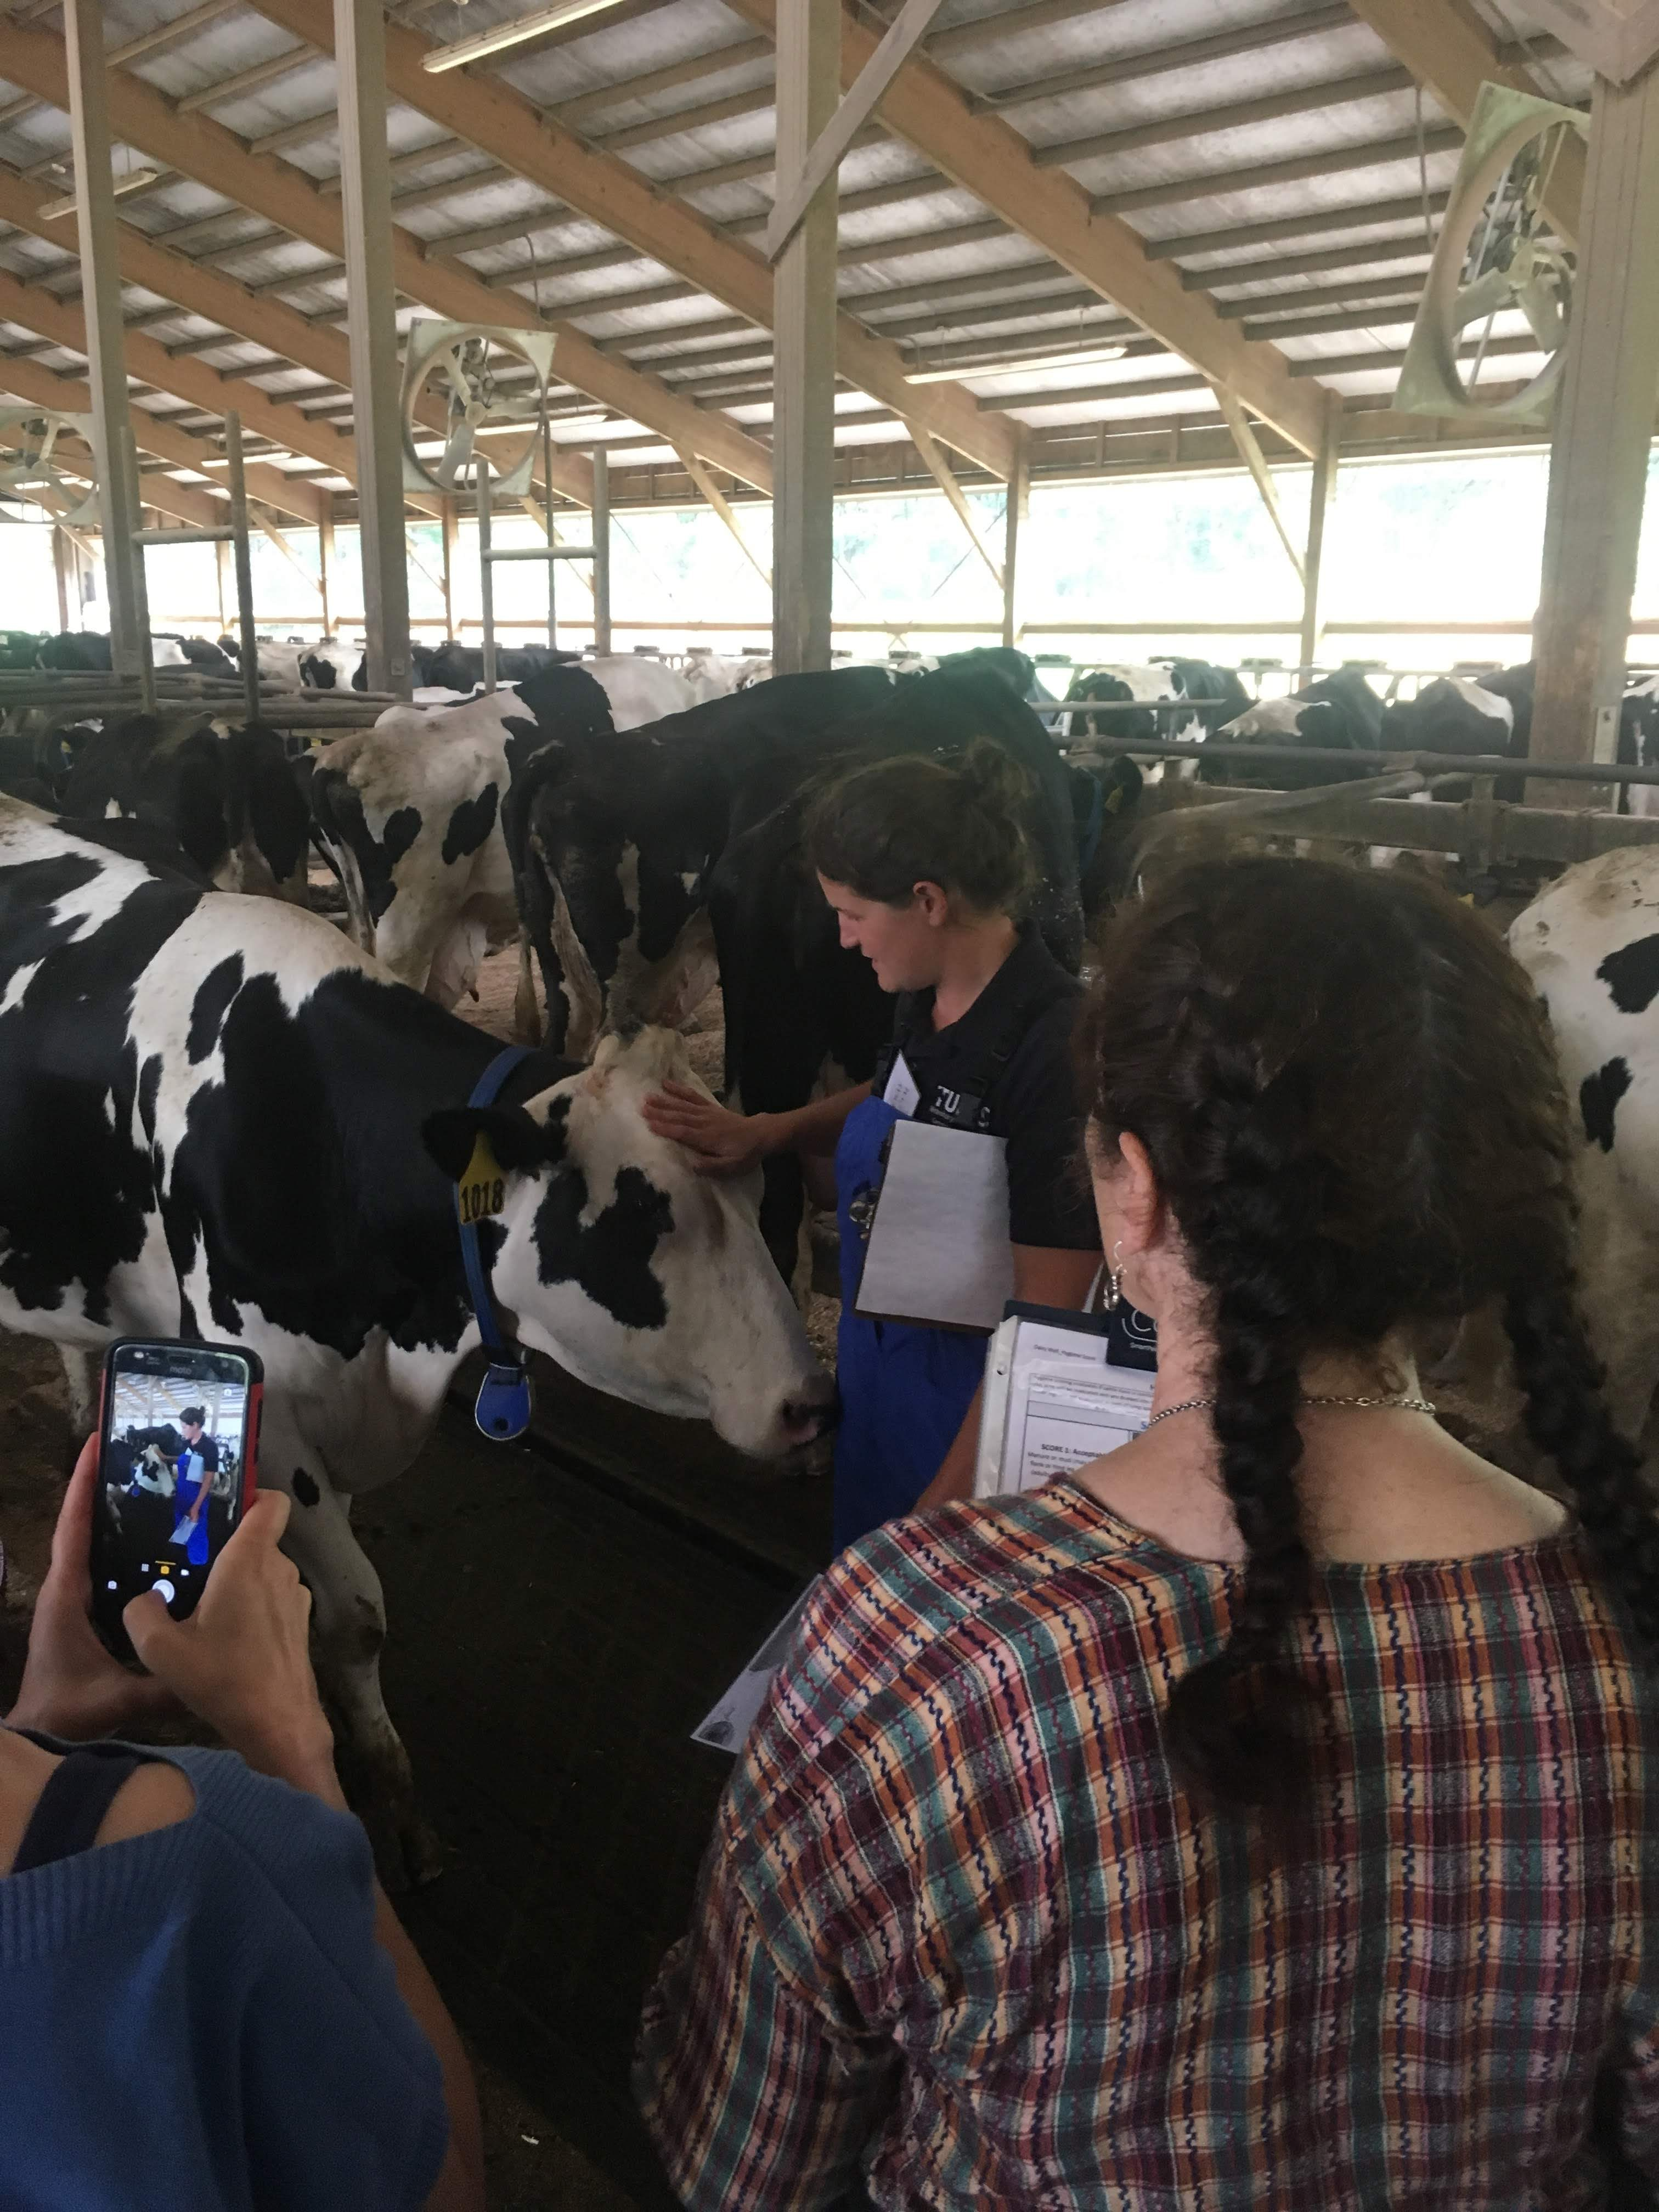 Summer Short Course: Animals and Society 2018 - Dr. Philips talking to the class. The cows approached her and seem curious, too.